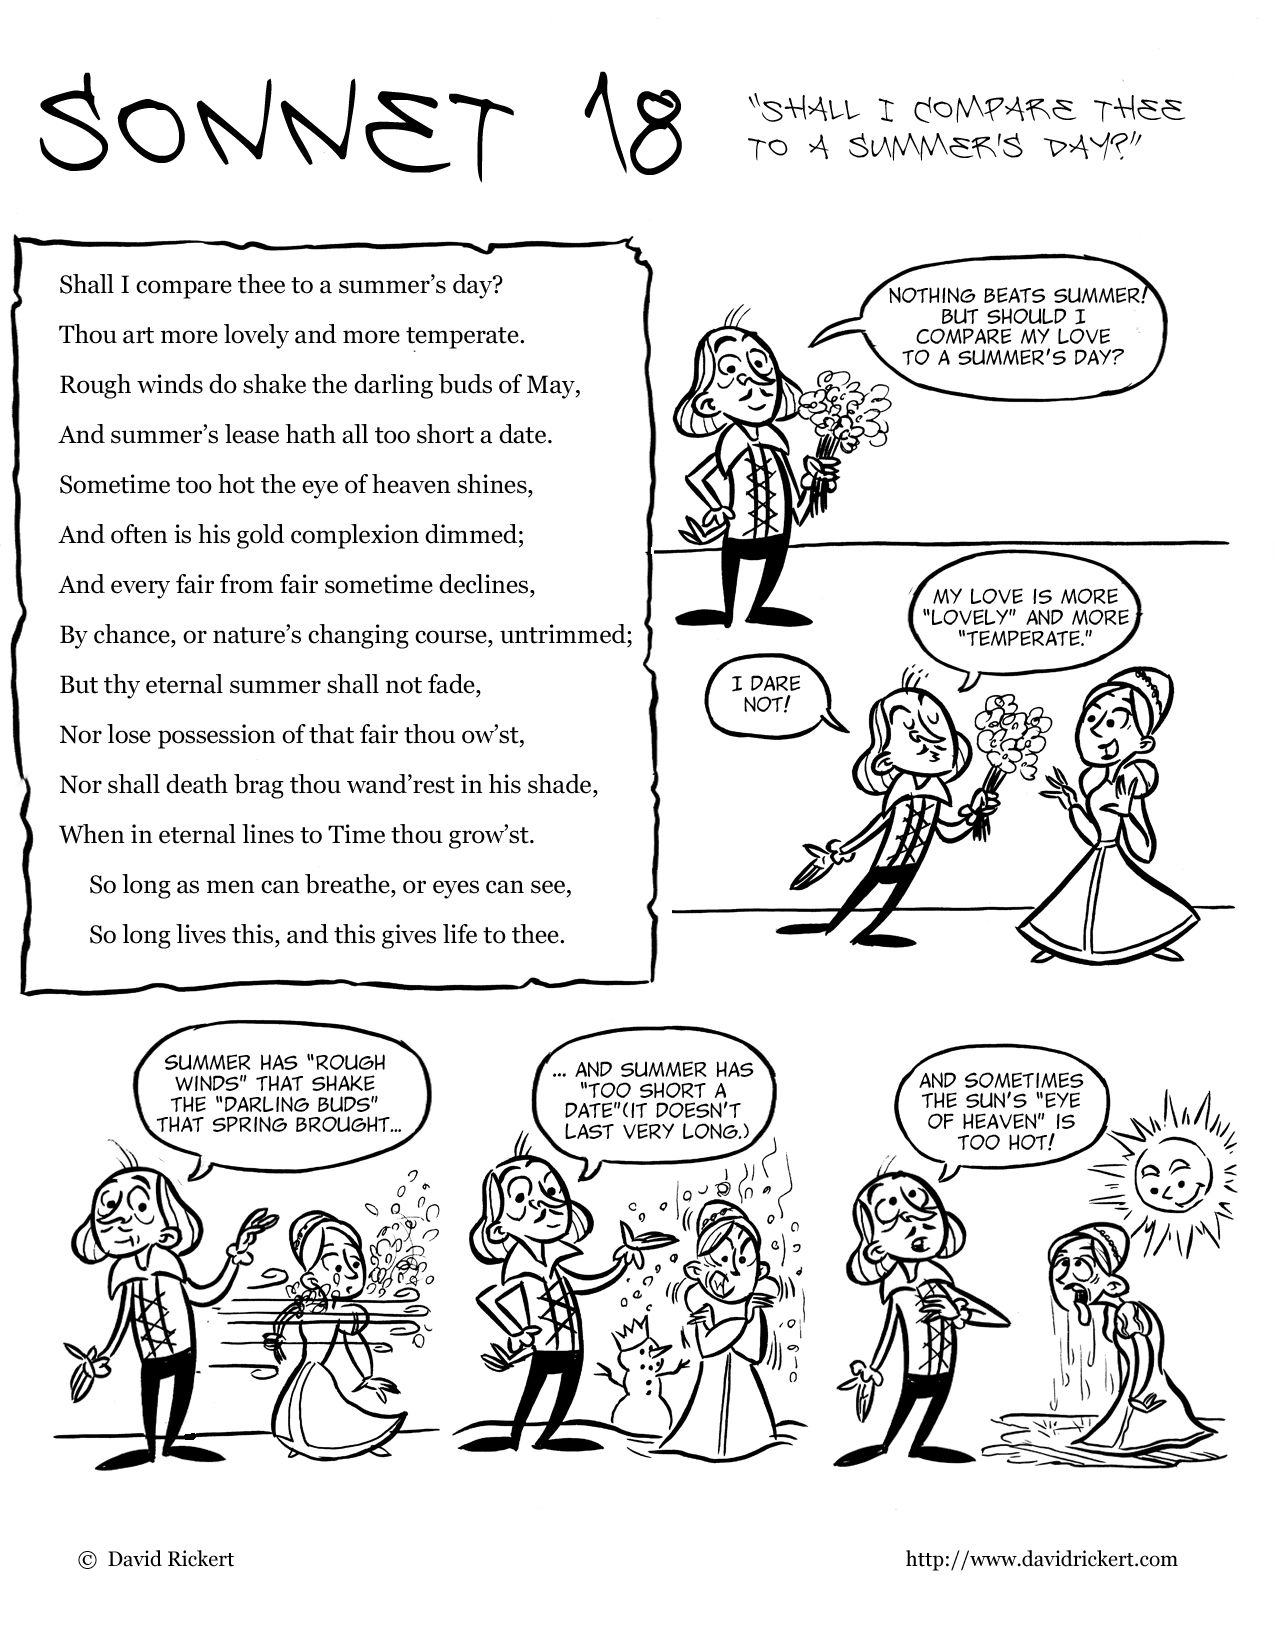 shakespeare comics sonnet david rickert the packet contains a cartoon that explains the poem as well as comprehension activities and lessons on the sonnet form check it out at my store